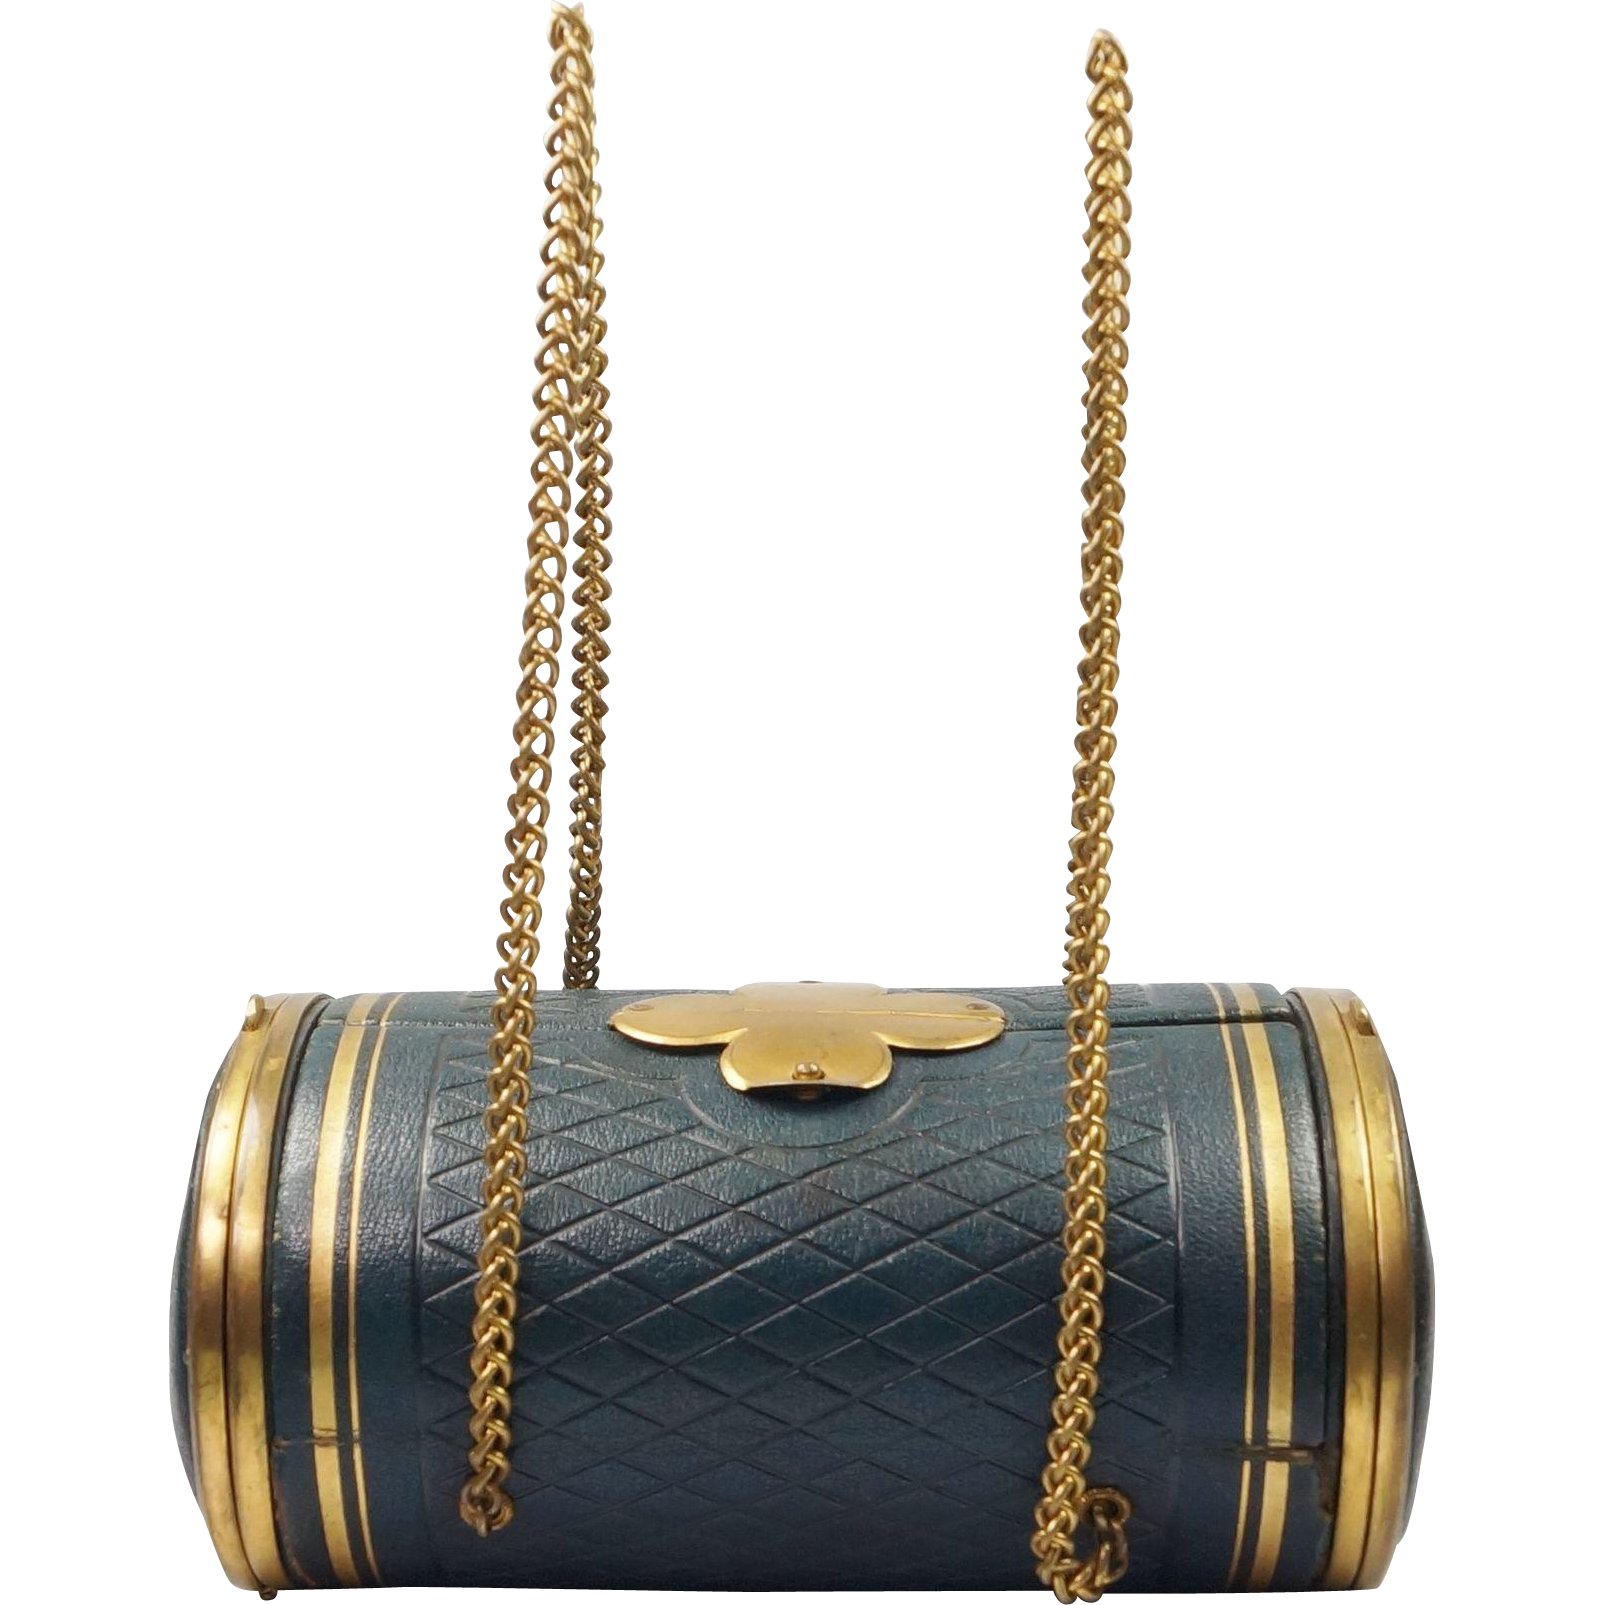 Antique 19th Century French Sewing Etui Casket Purse Box With Original Gilt Crochet Tools Circa 1870